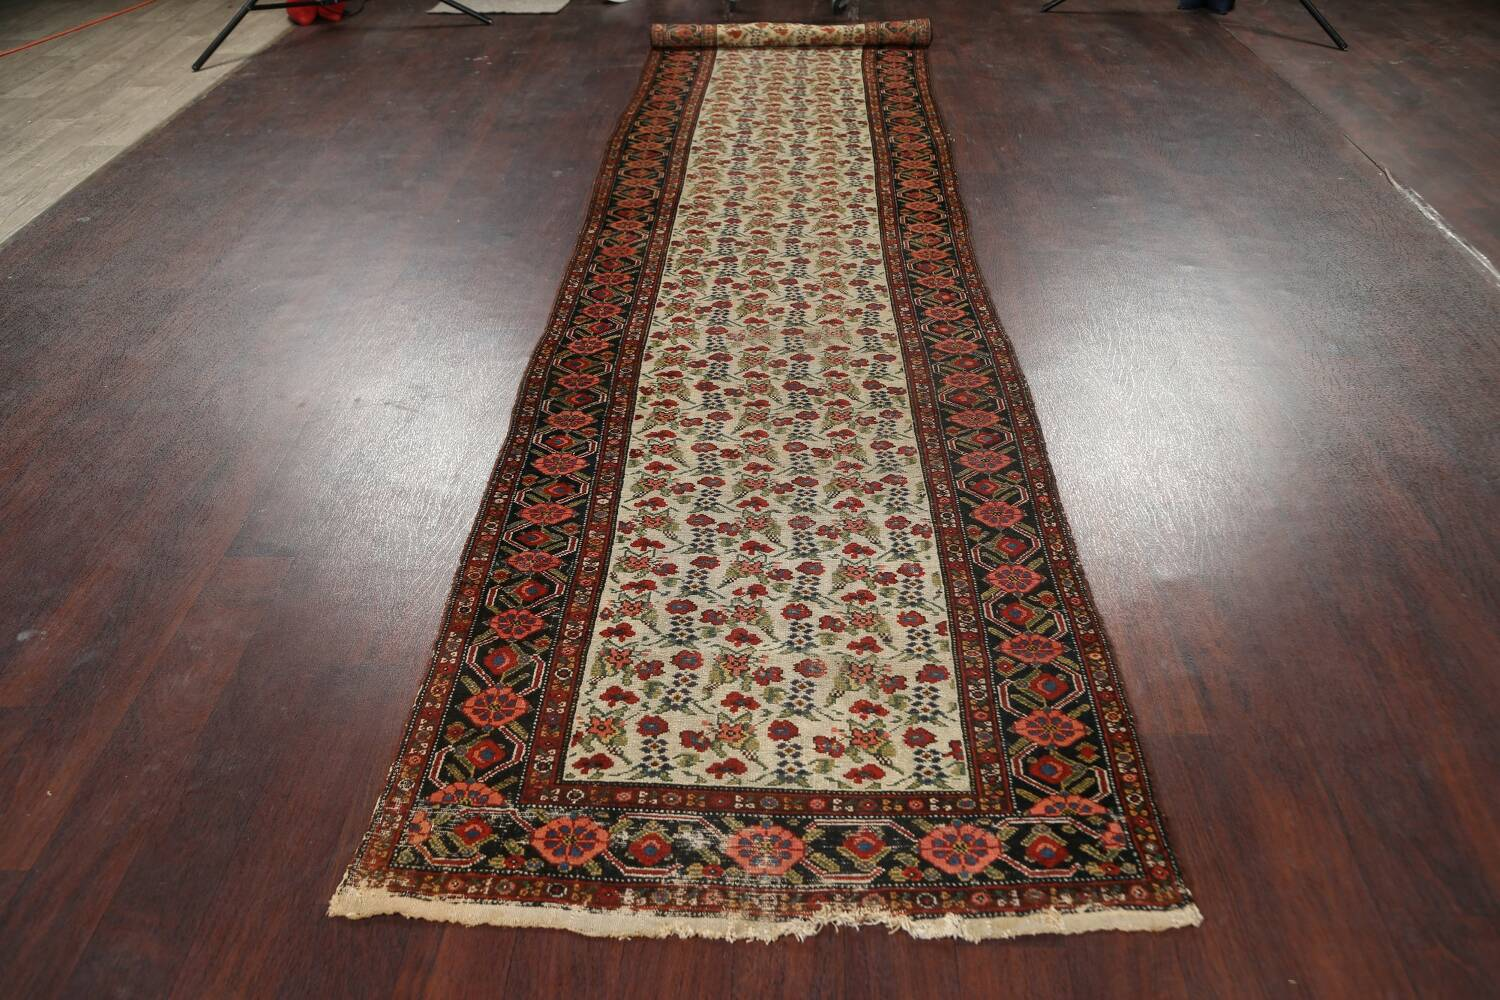 Pre-1900 Antique Vegetable Dye Malayer Persian Runner Rug 3x16 image 14